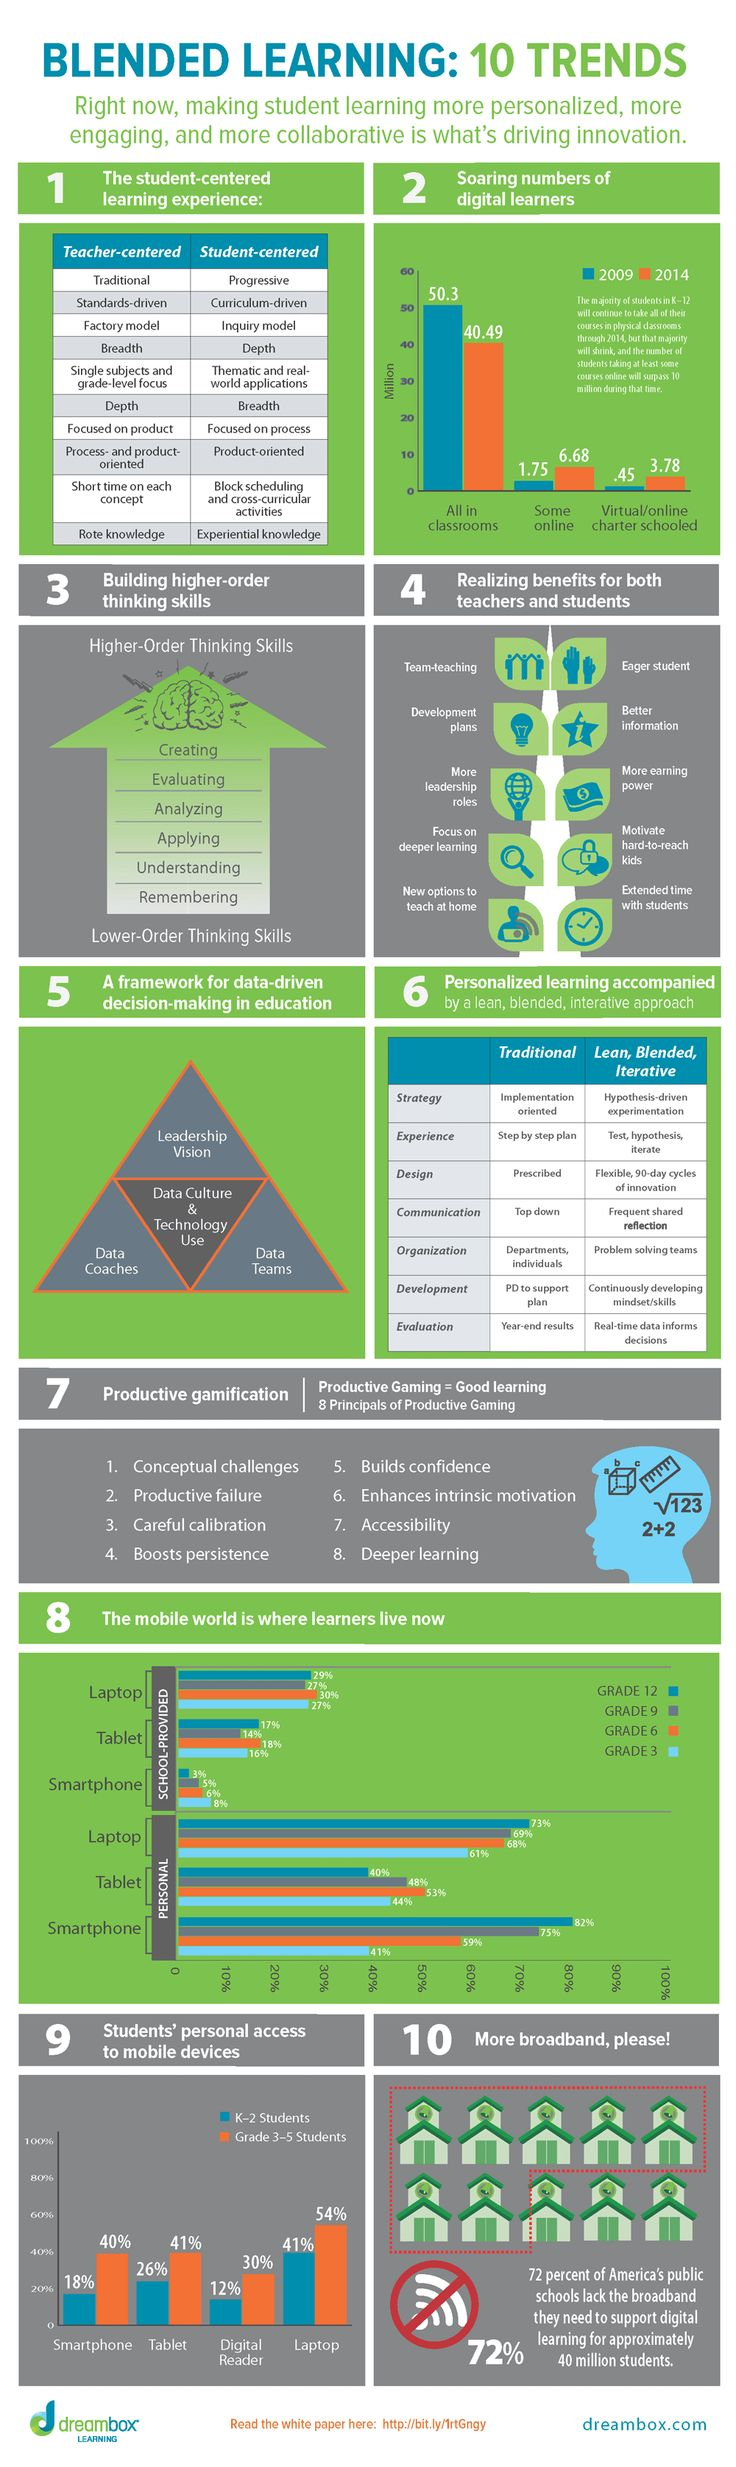 Blended Learning Infographic: 10 Trends | e-Learning Infographics http://elearninginfographics.com/blended-learning-infographic-10-trends/?utm_source=feedburner&utm_medium=email&utm_campaign=Feed%3A+eLearningInfographics+%28eLearningInfographics%29